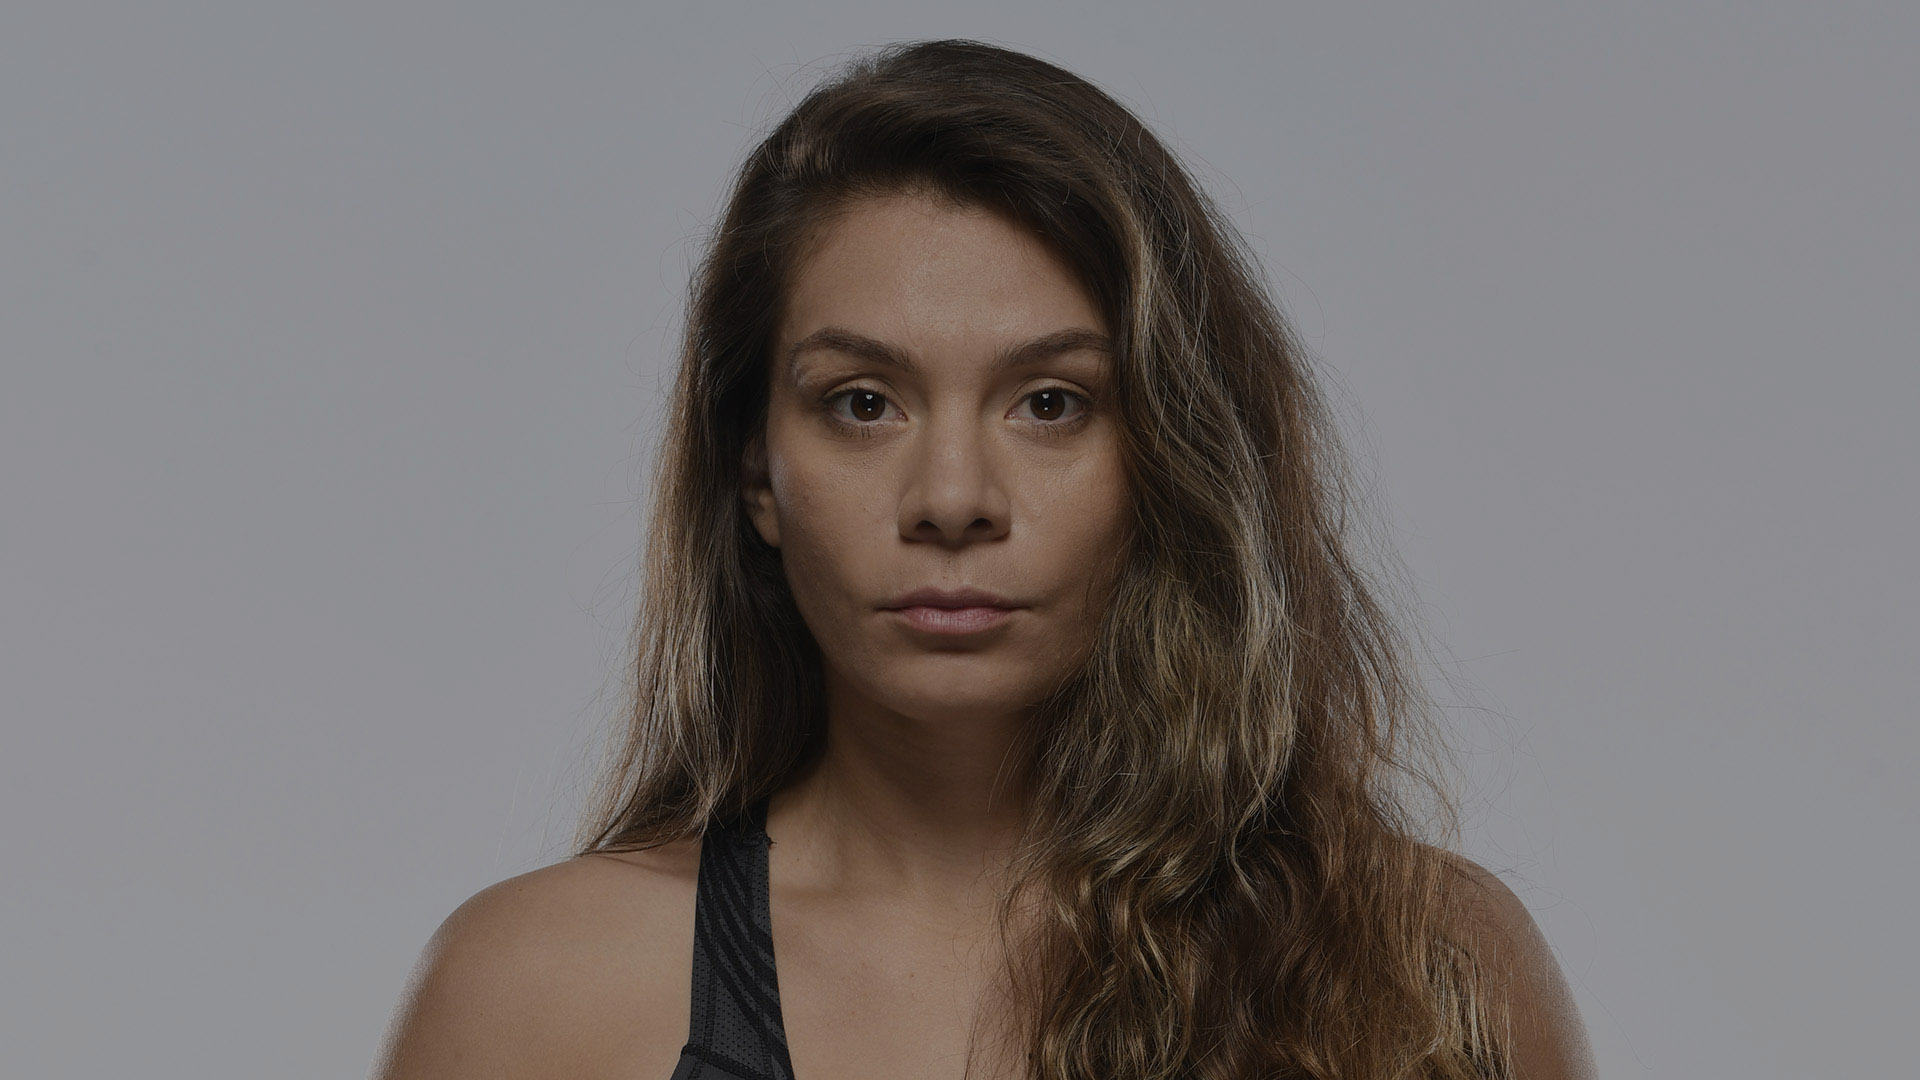 Nicco Montano poses for a portrait during a UFC photo session on July 29 2021 in Las Vegas Nevada. (Photo by Mike Roach/Zuffa LLC)